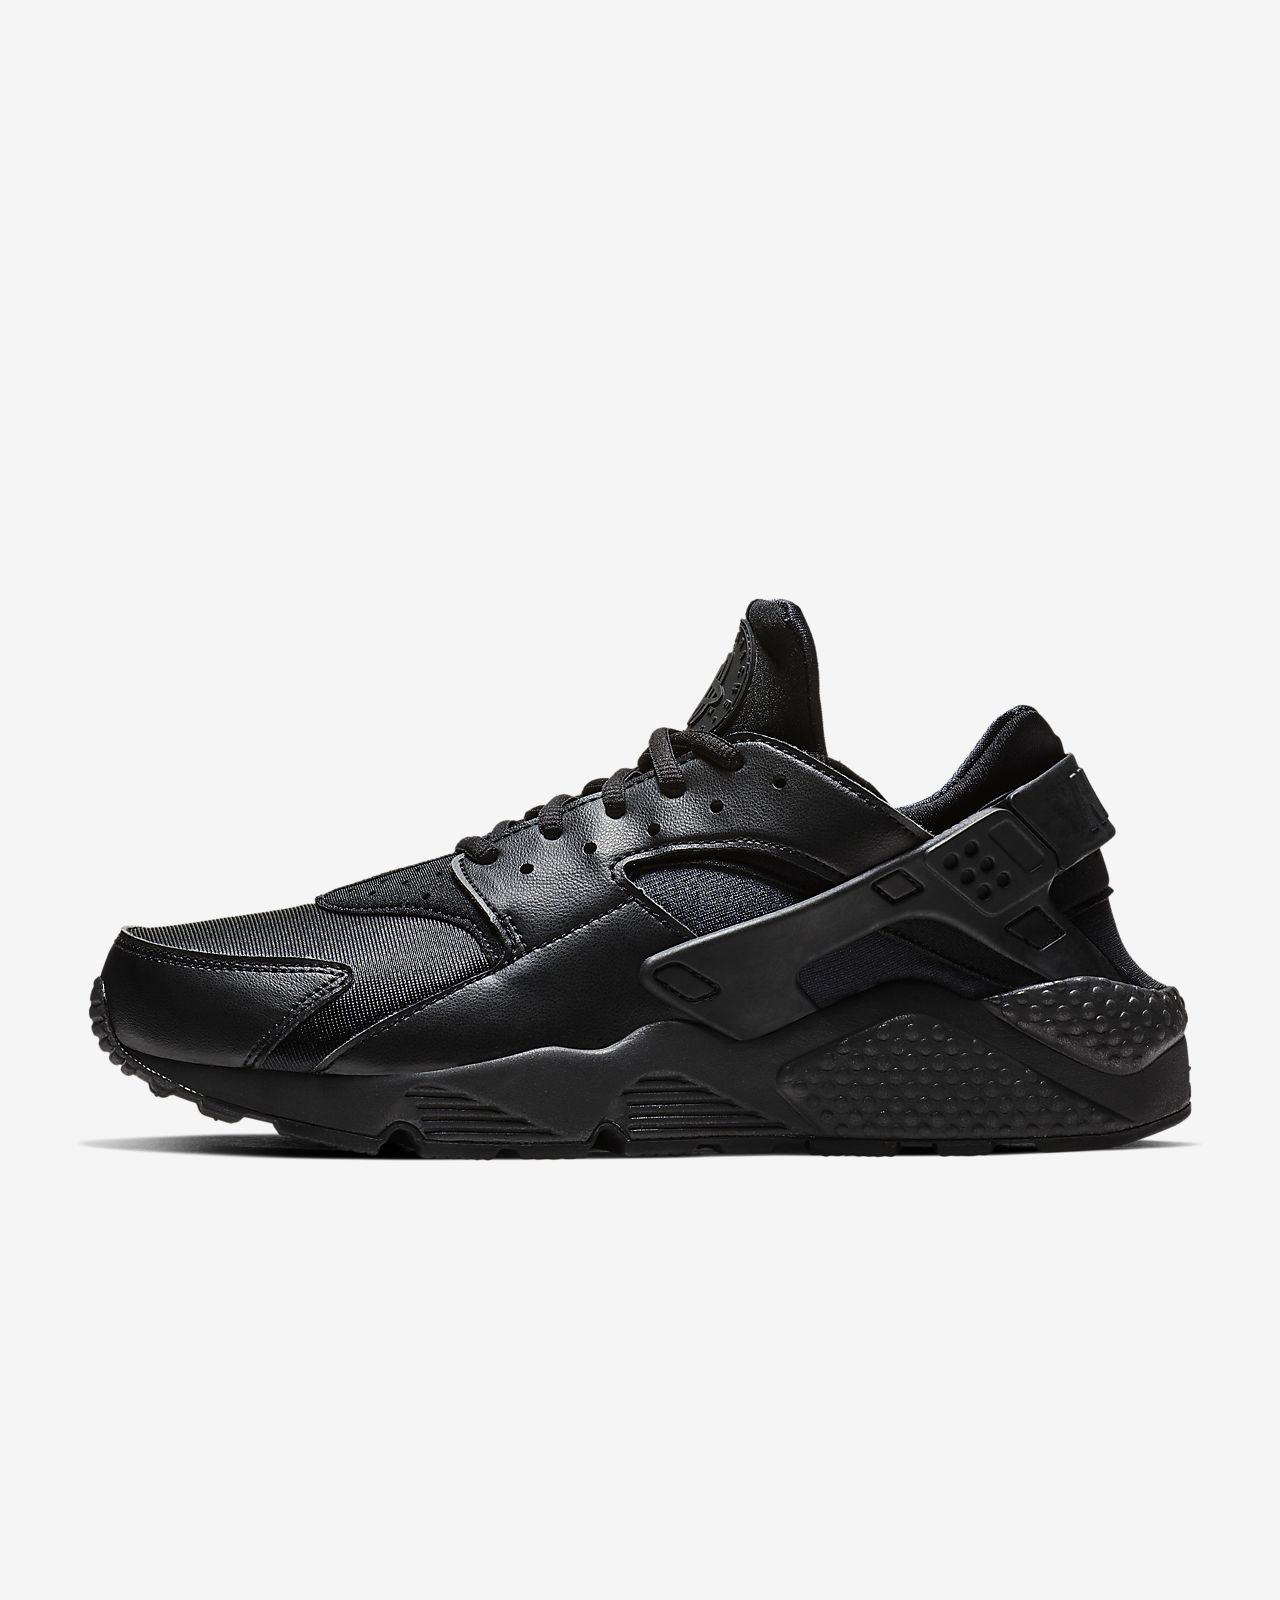 6a48504a061 Nike Air Huarache Women s Shoe. Nike.com